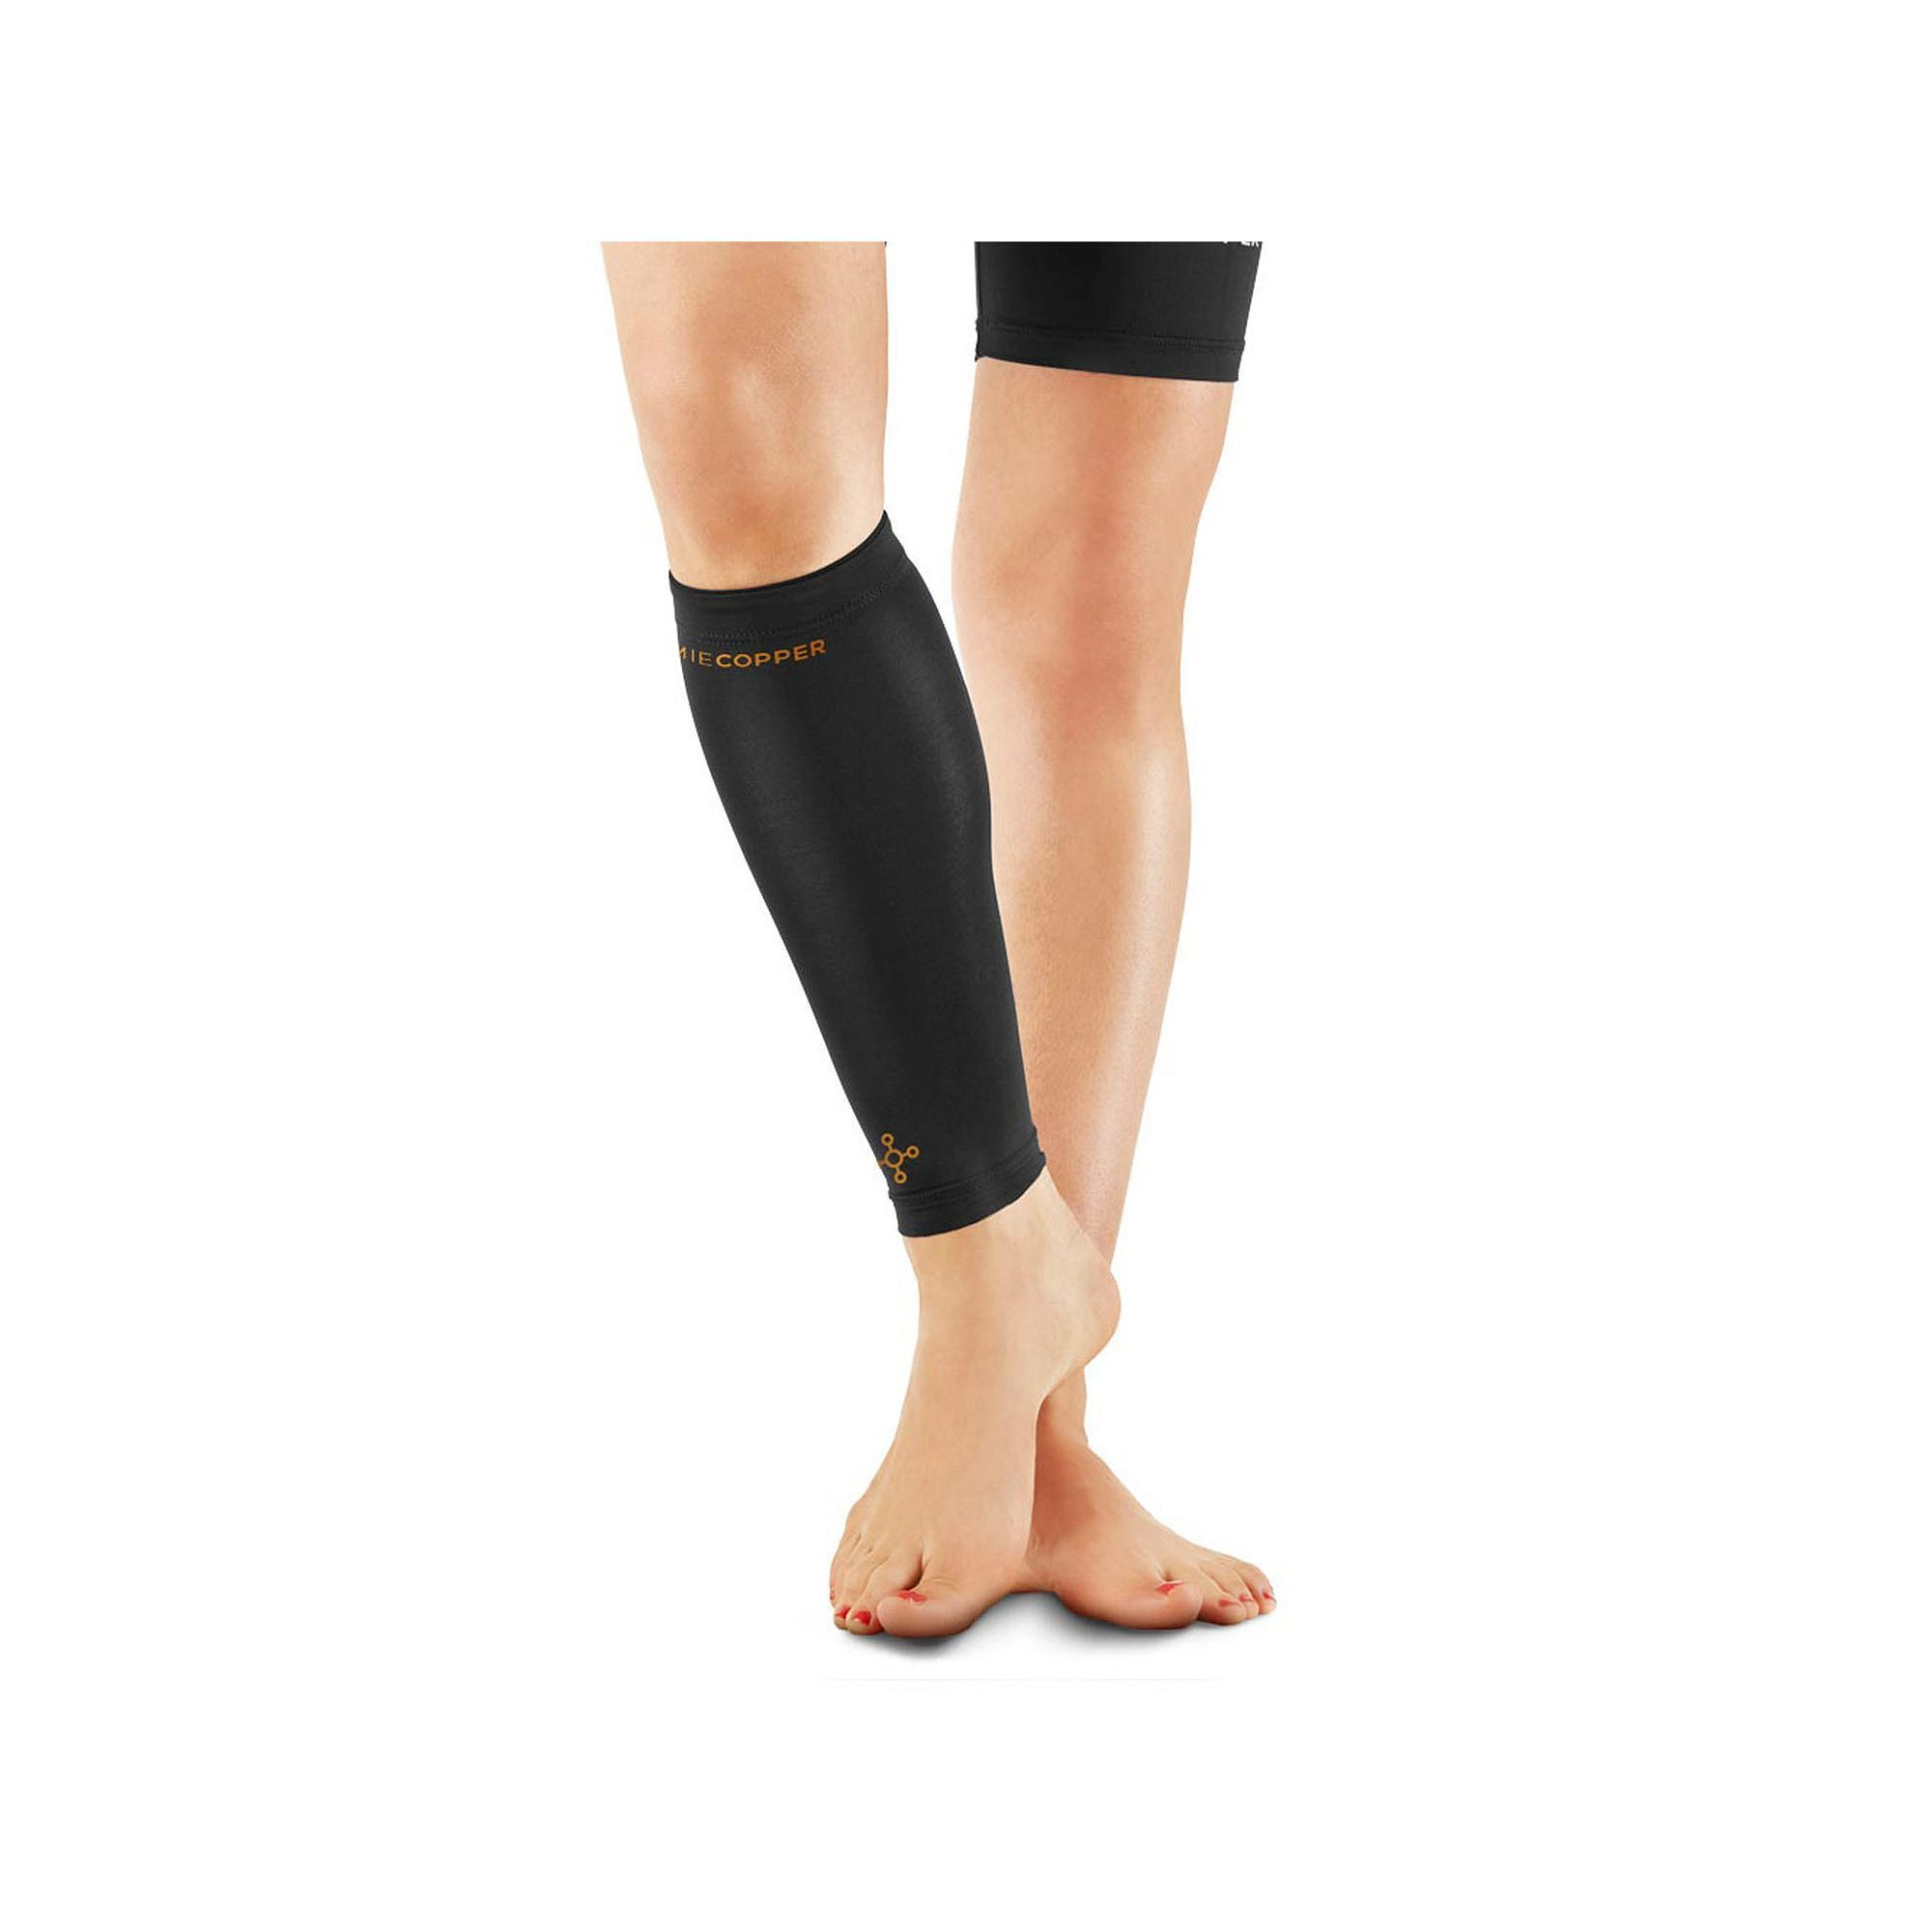 ac4356332c Women's Tommie Copper Recovery Compression Calf Sleeve, Black ...